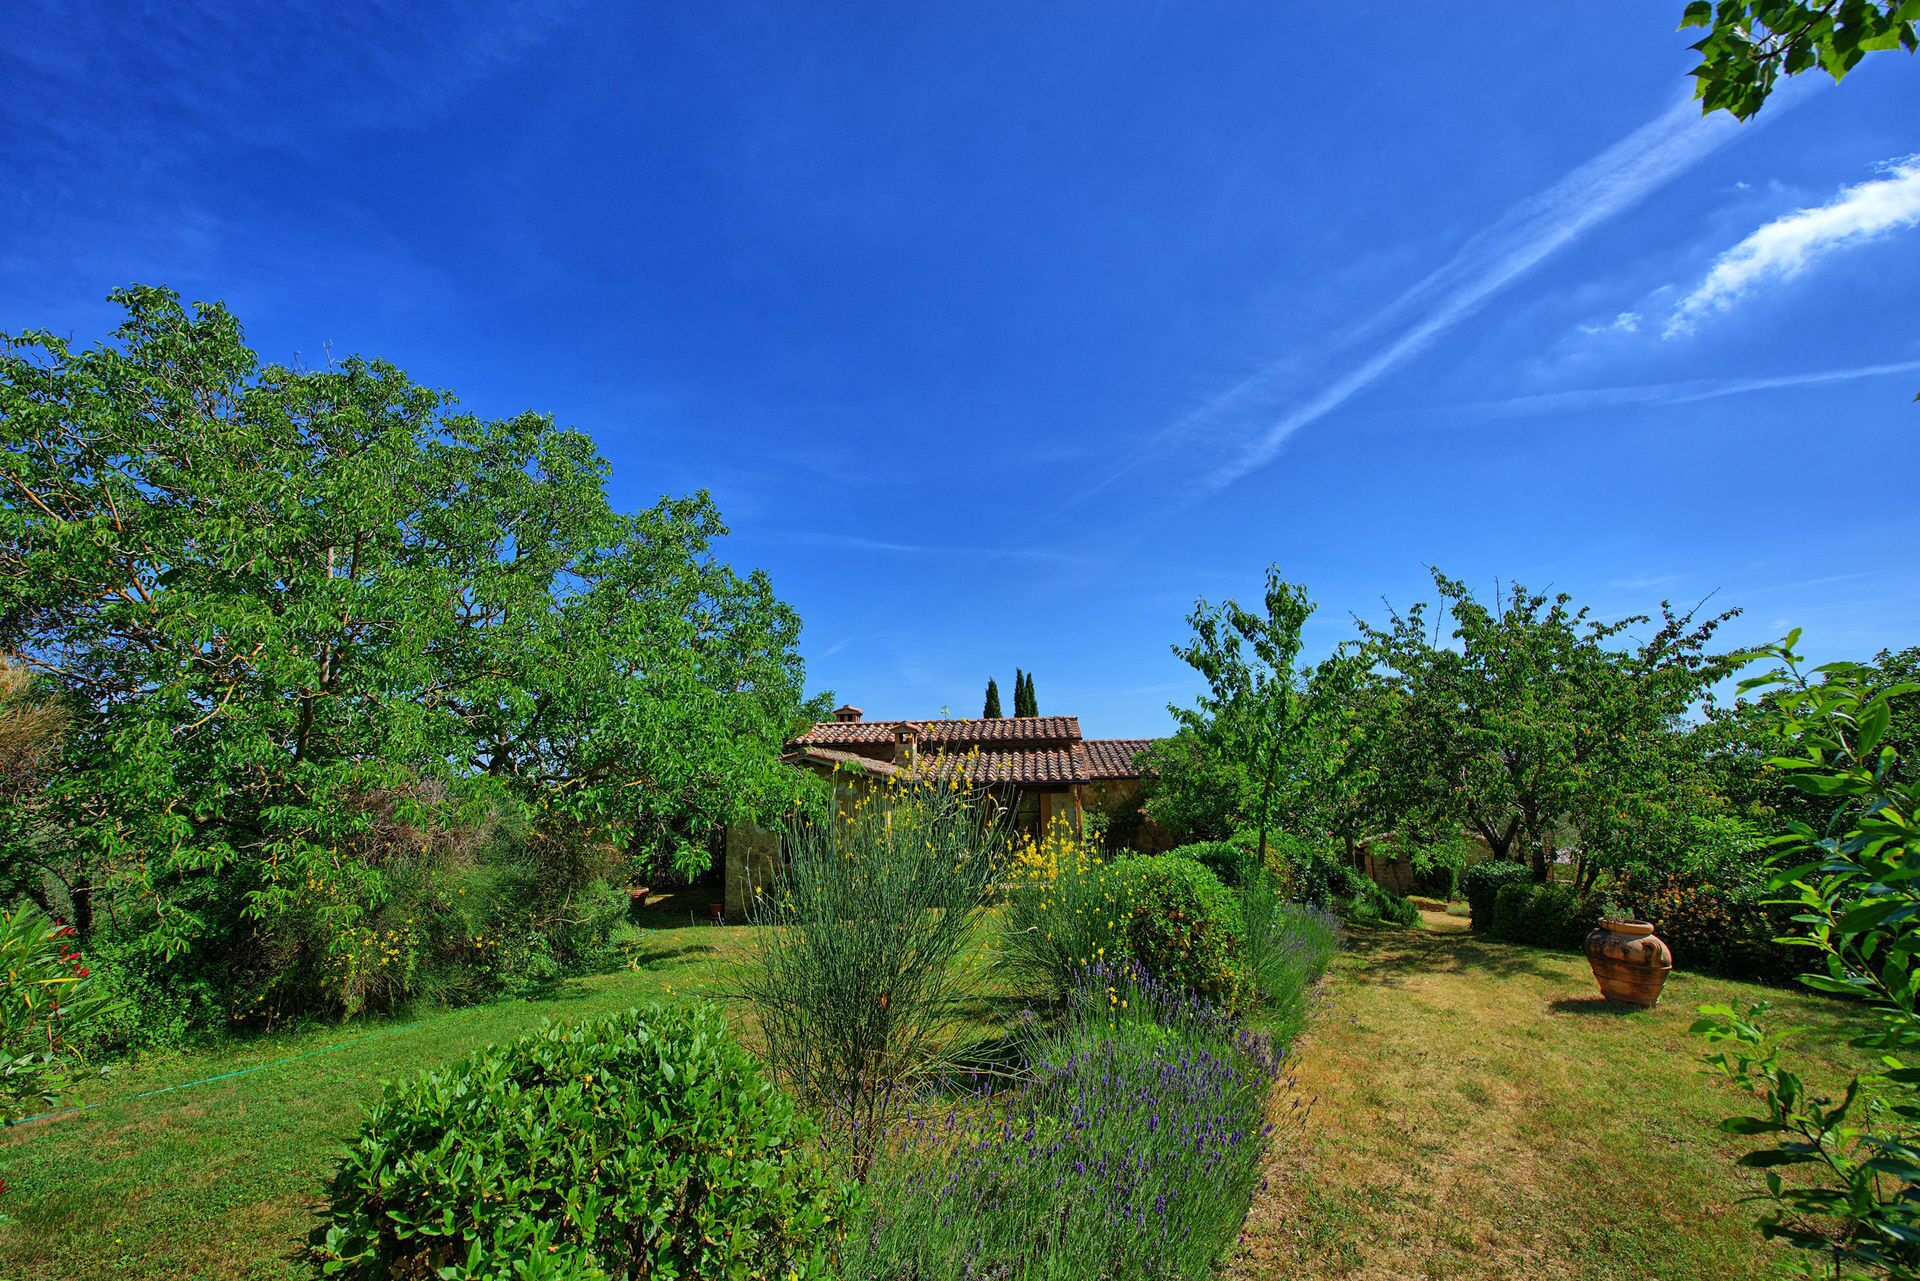 Villa Sarteano - Country Villa With Swimming Pool in Orcia Valley, Tuscany